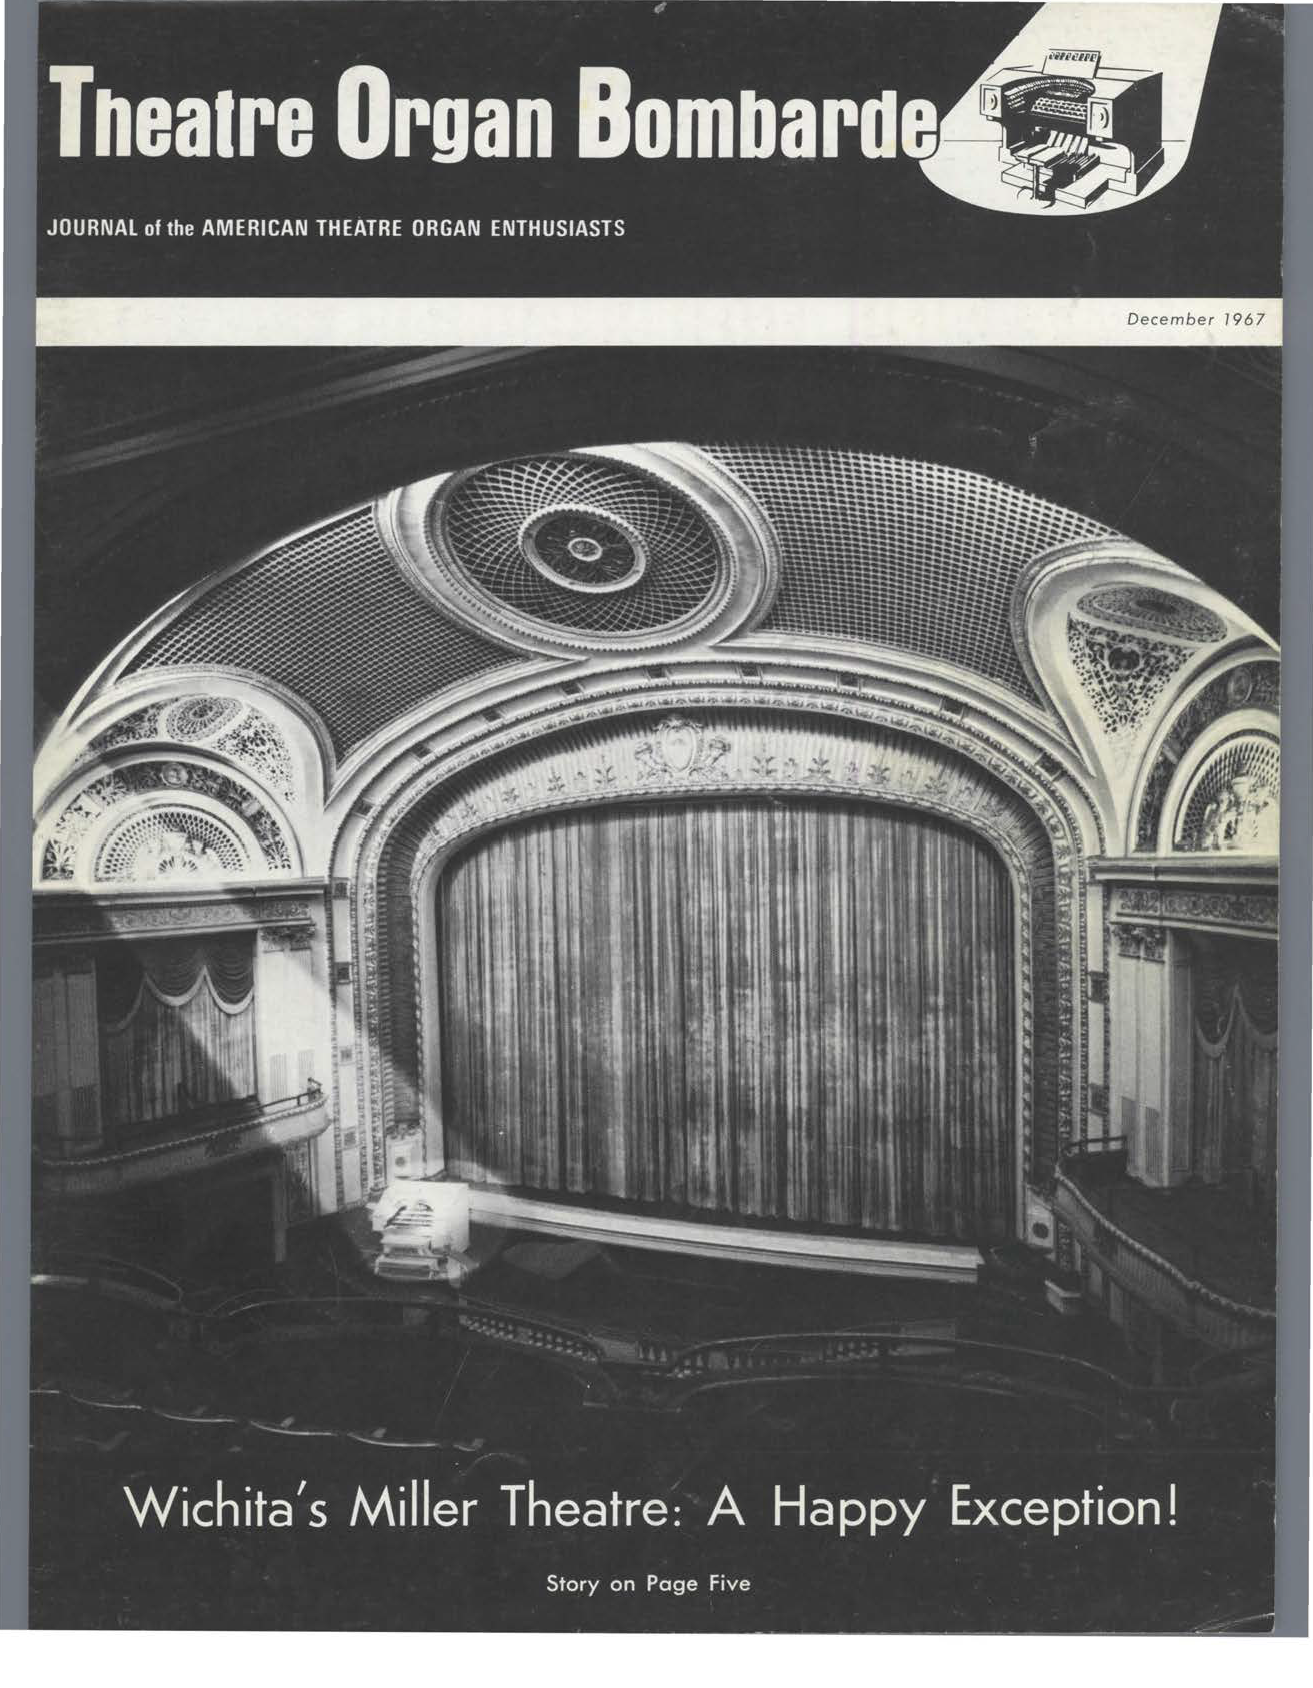 Theatre Organ, December 1967, Volume 9, Number 6